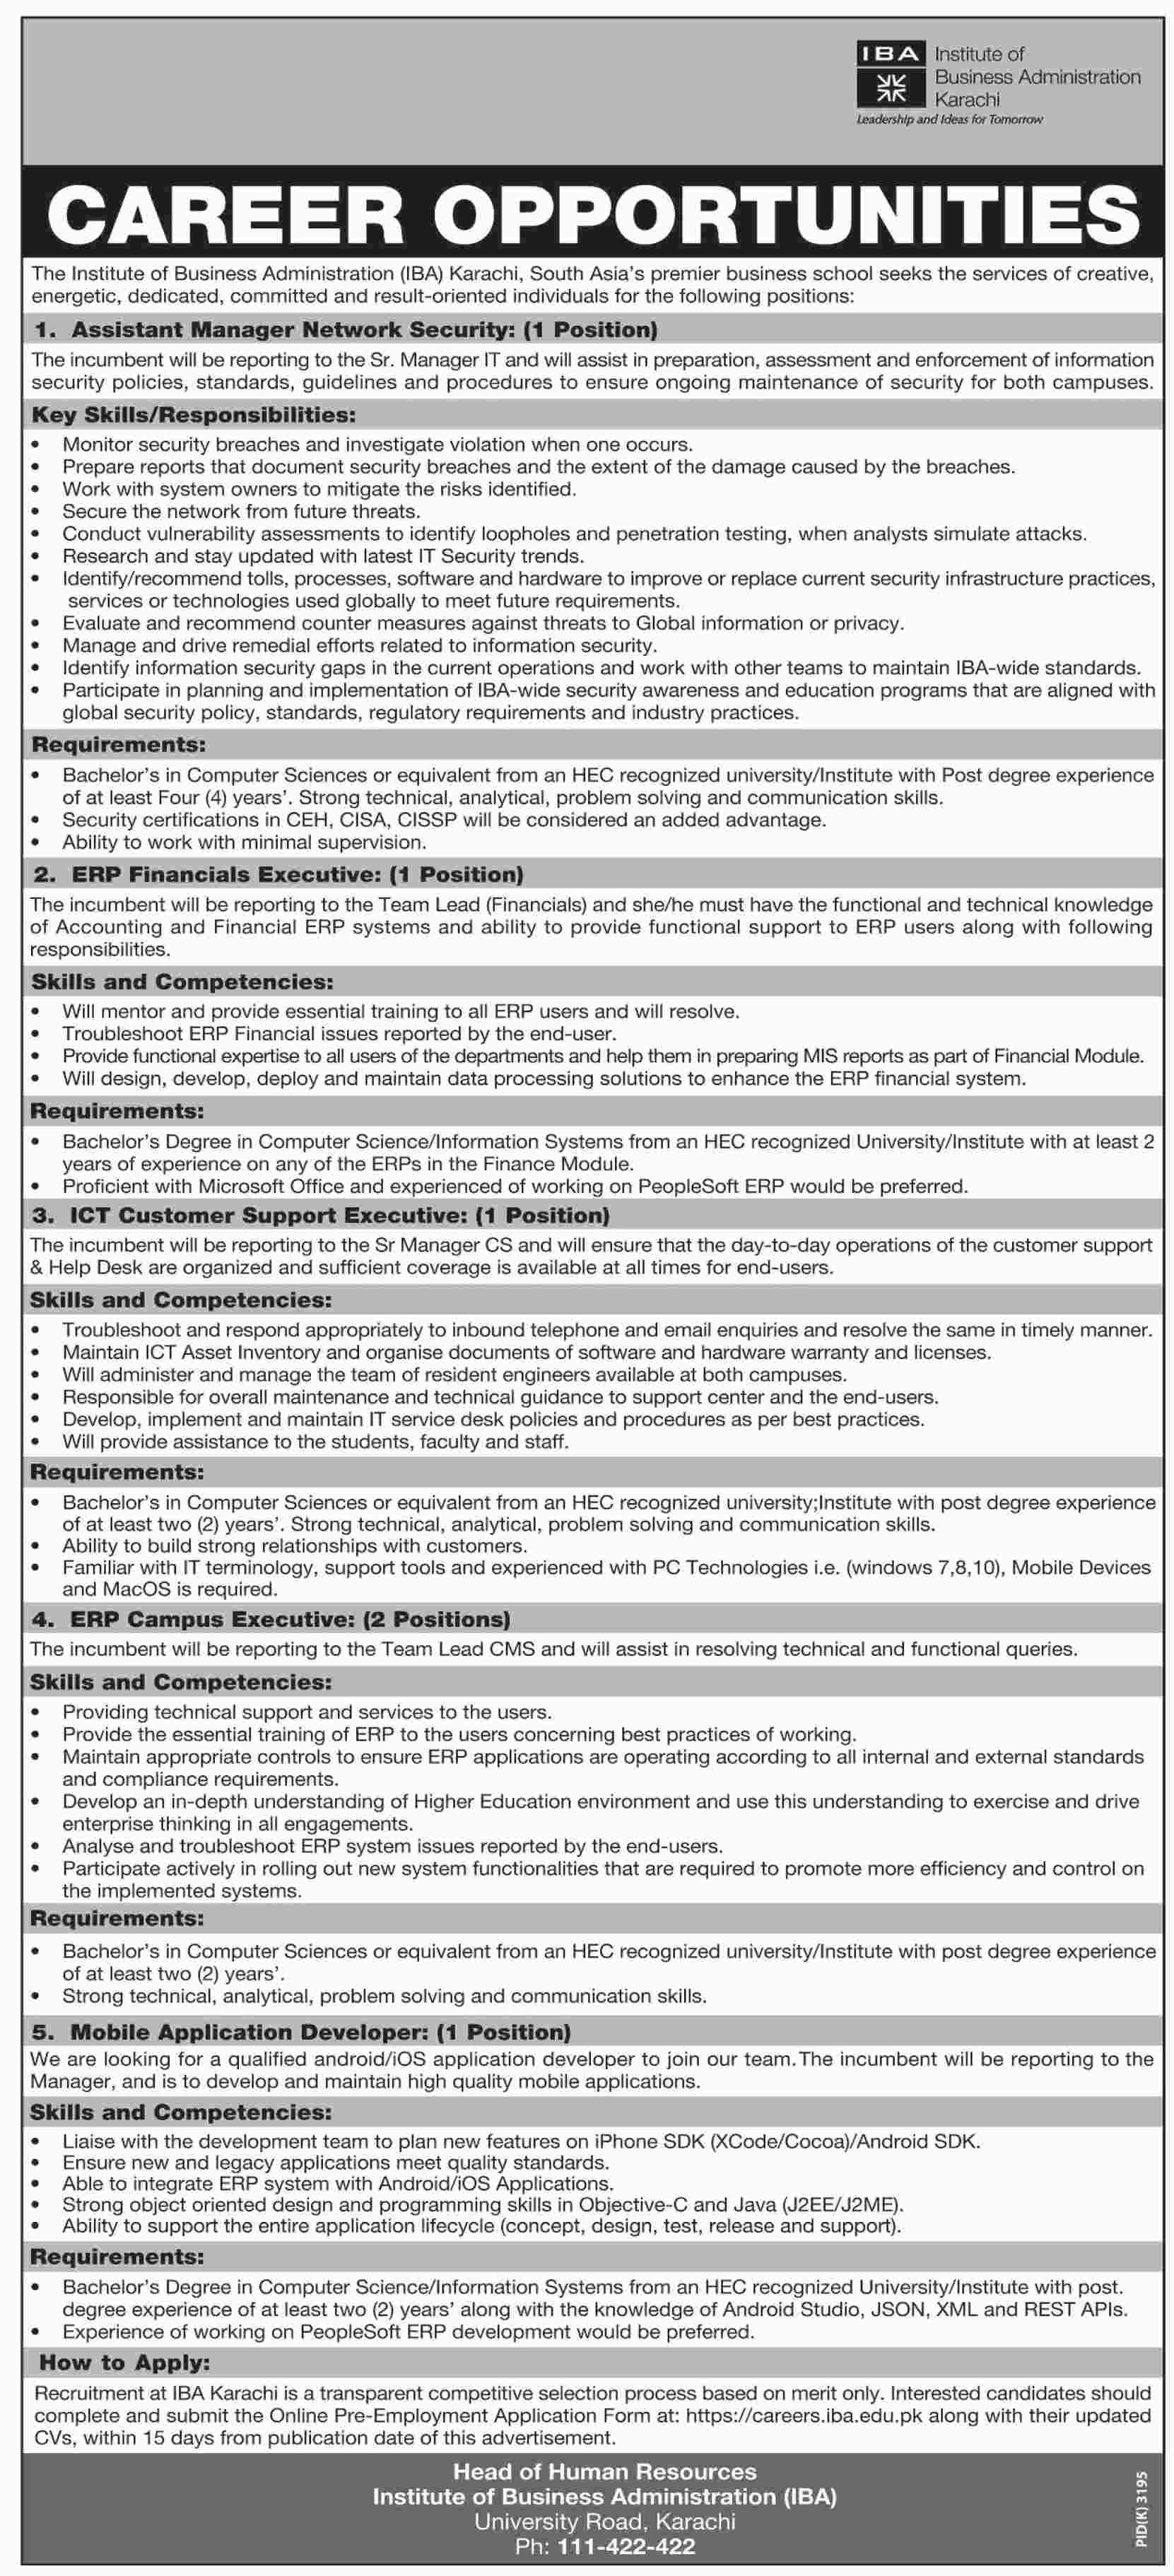 Jobs in Institute of Business Administration in Karachi 25 Feb 2018